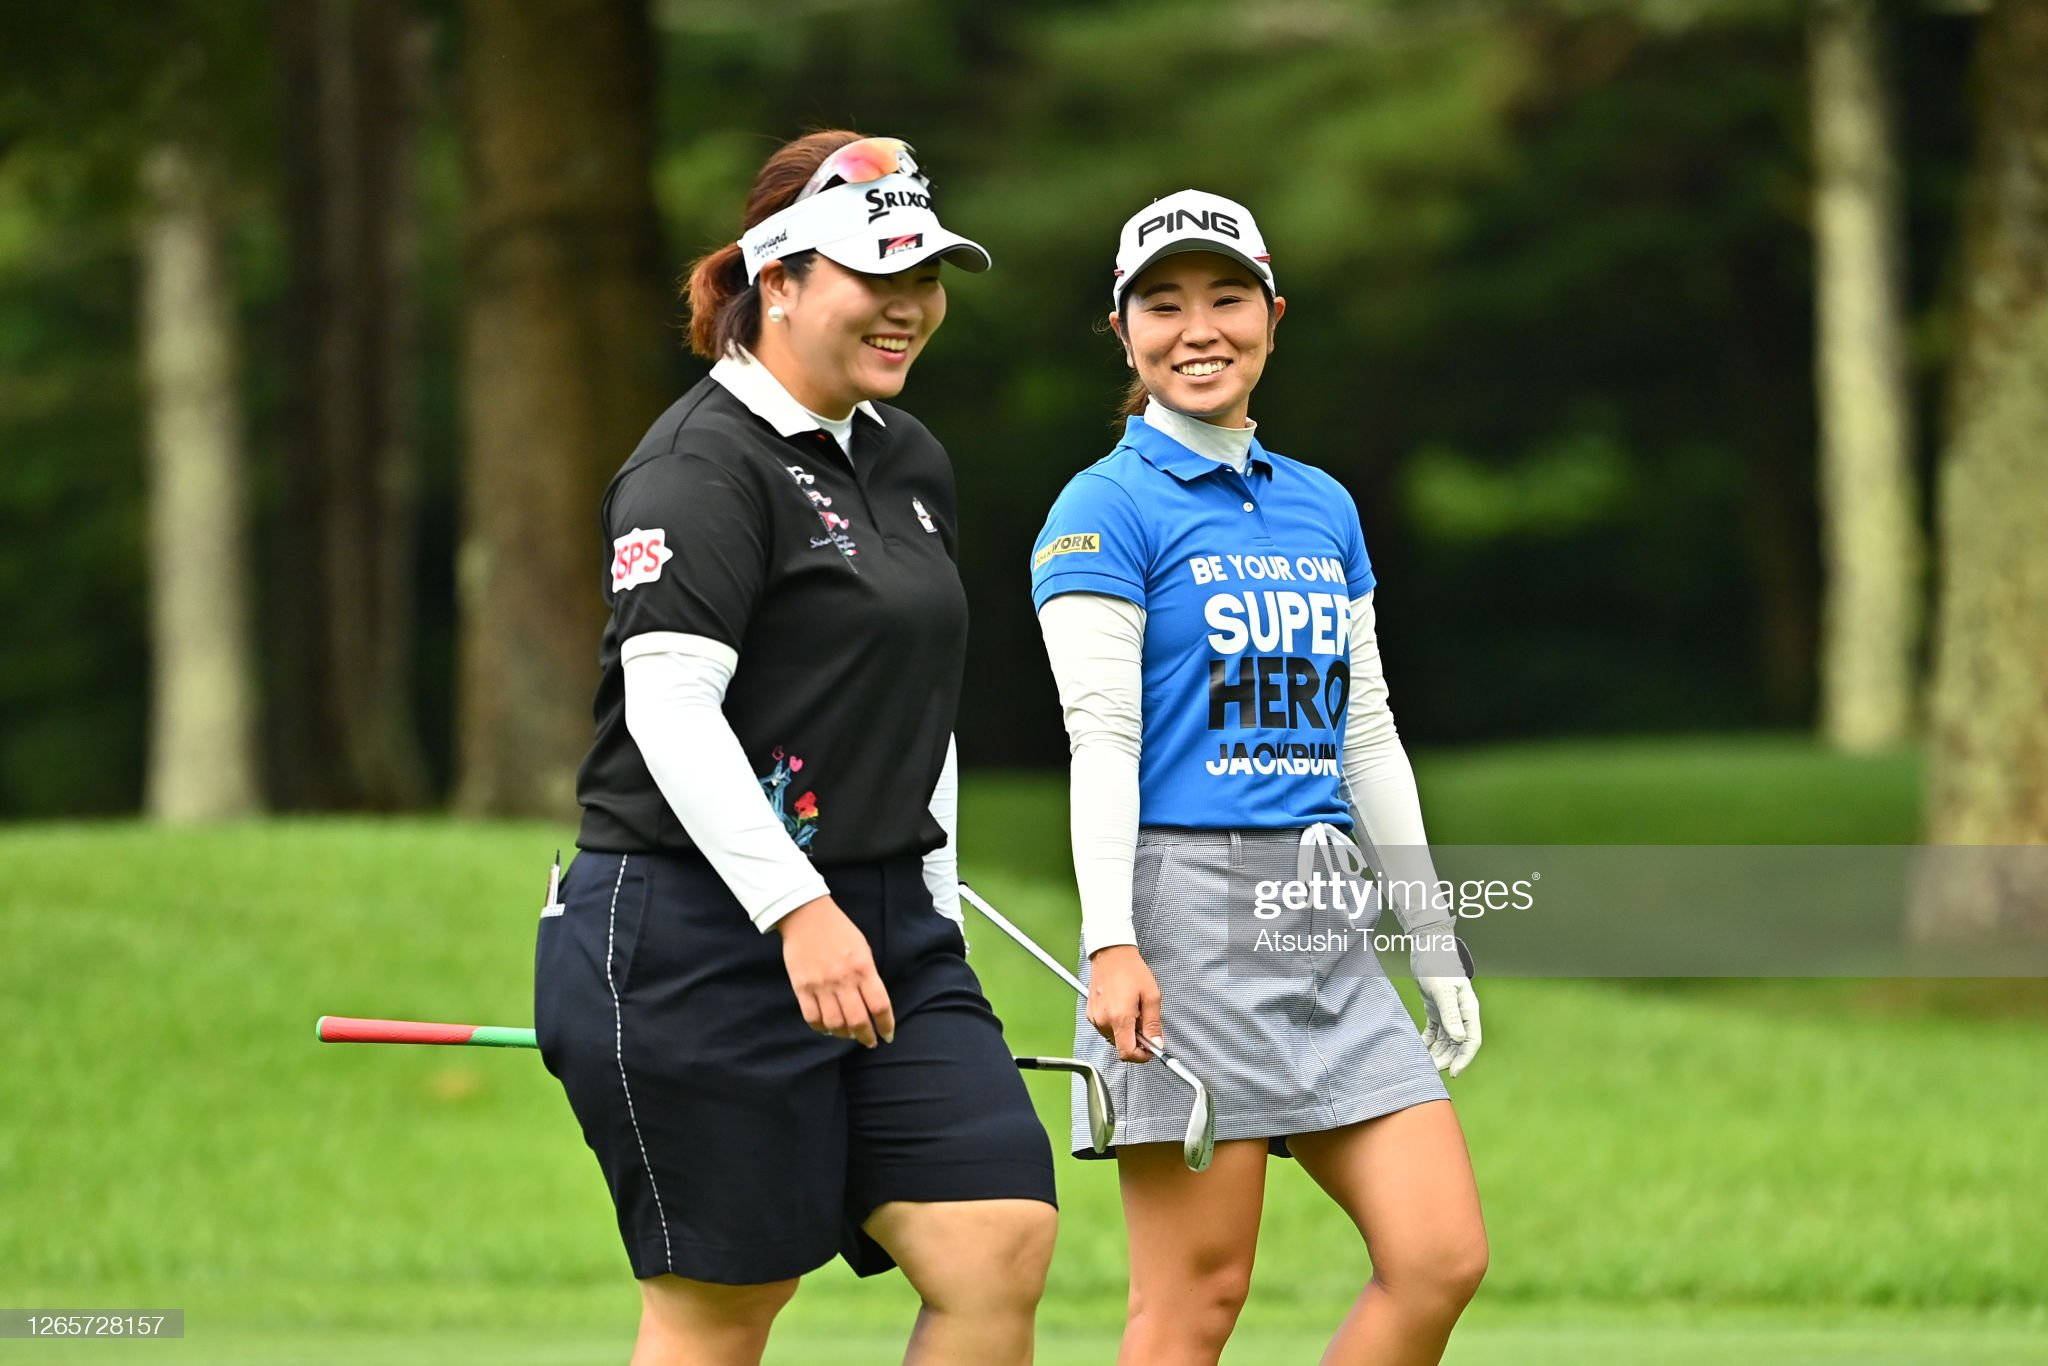 https://media.gettyimages.com/photos/miki-sakai-and-mamiko-higa-of-japan-share-a-laugh-during-a-practice-picture-id1265728157?s=2048x2048